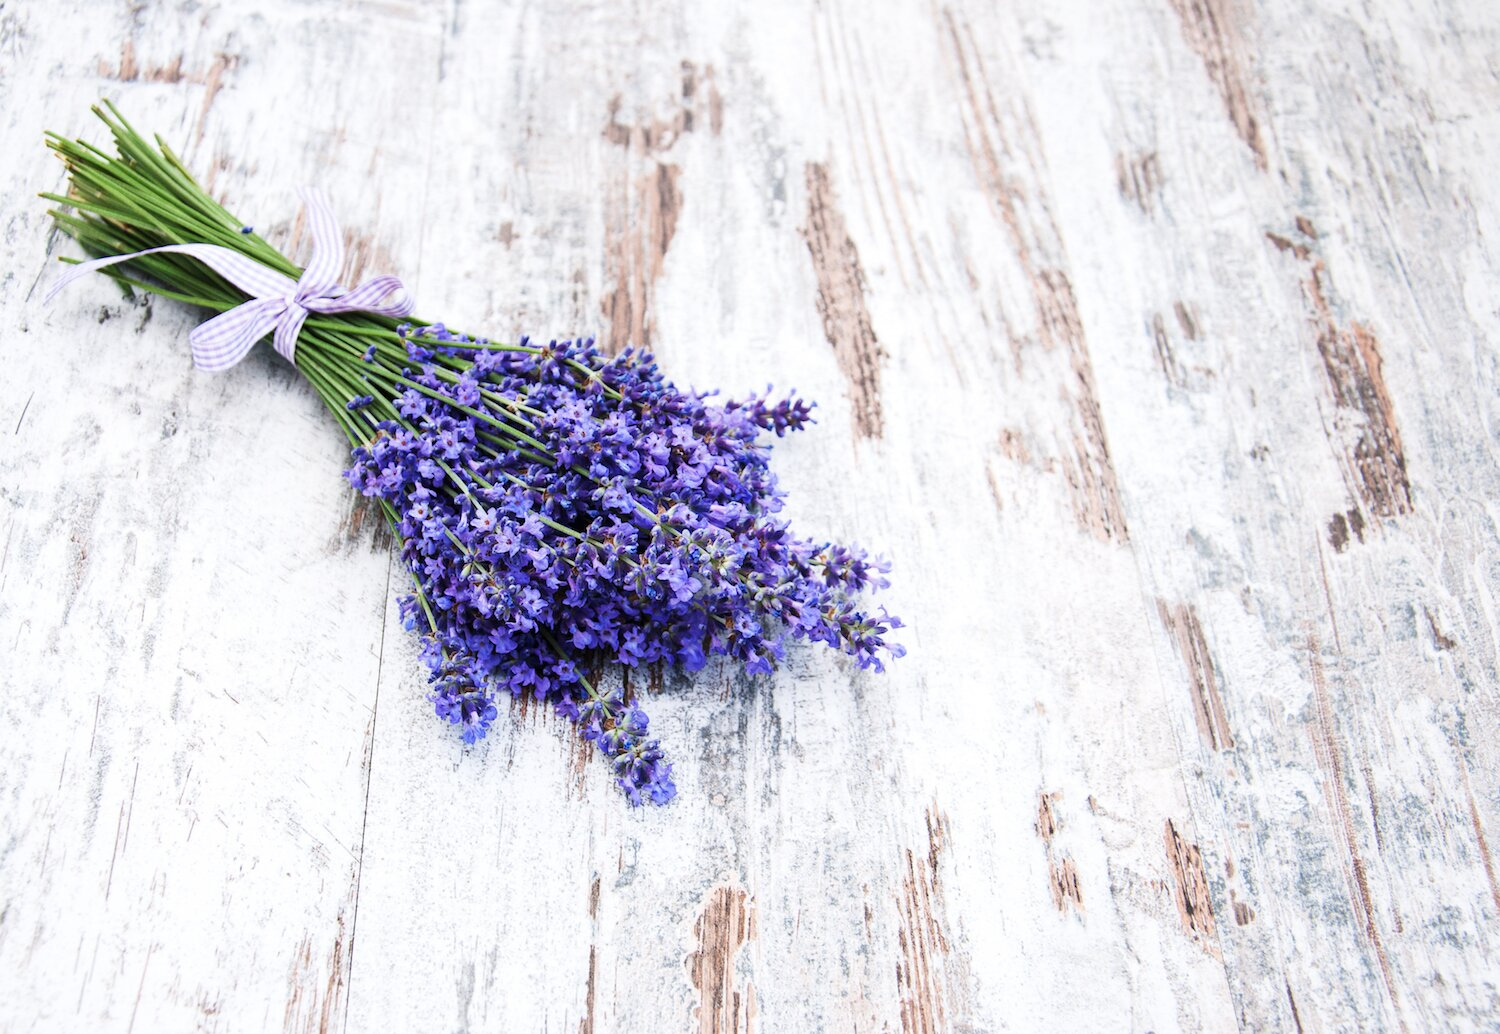 Lavender Repels Mosquitoes And Summer Just Got More Carefree